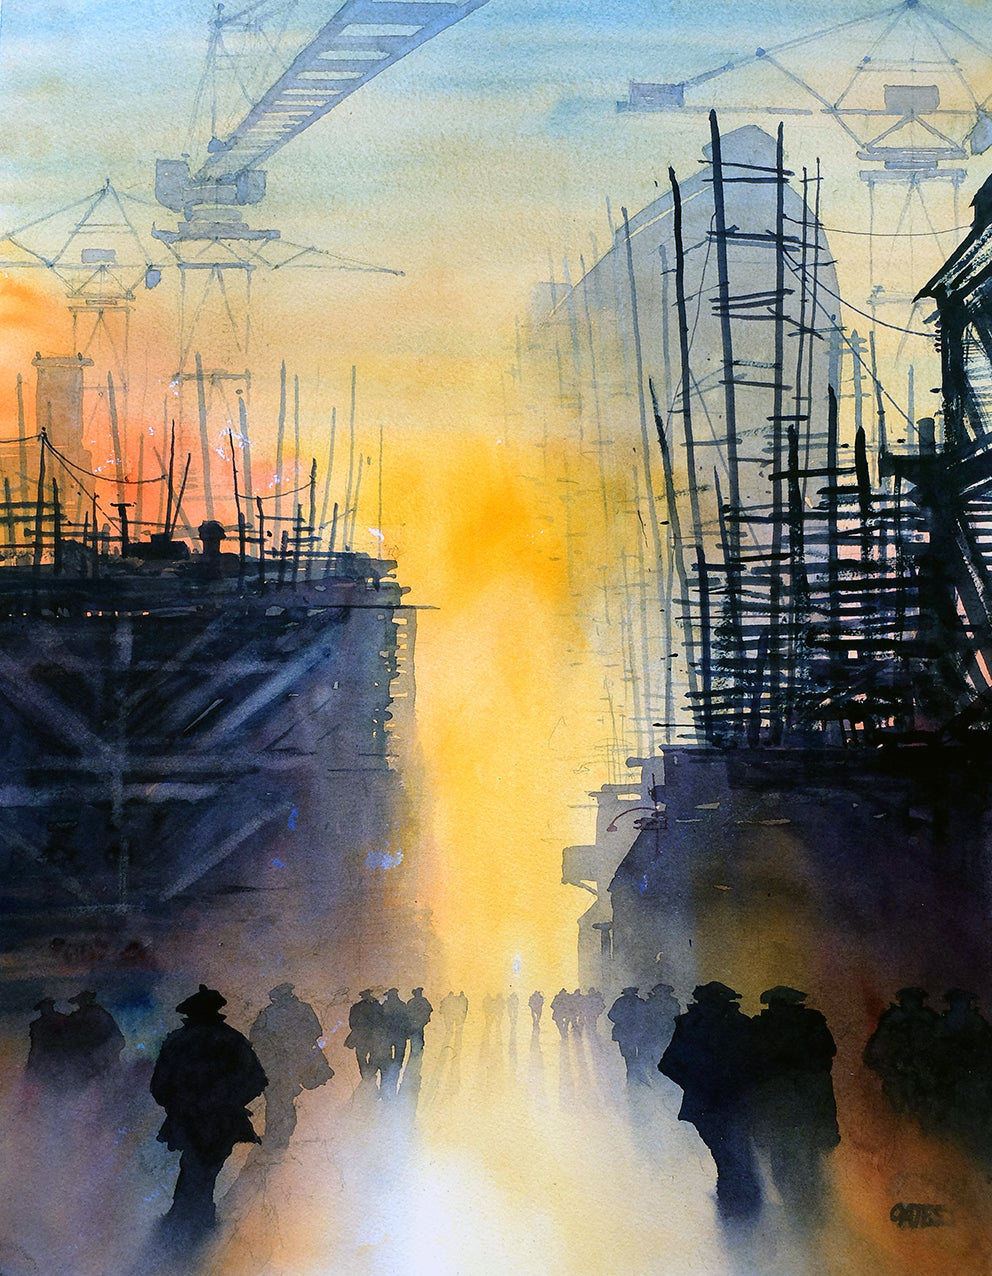 Clyde Shift Over. Original watercolour by Martin Oates 50 x 70 cm